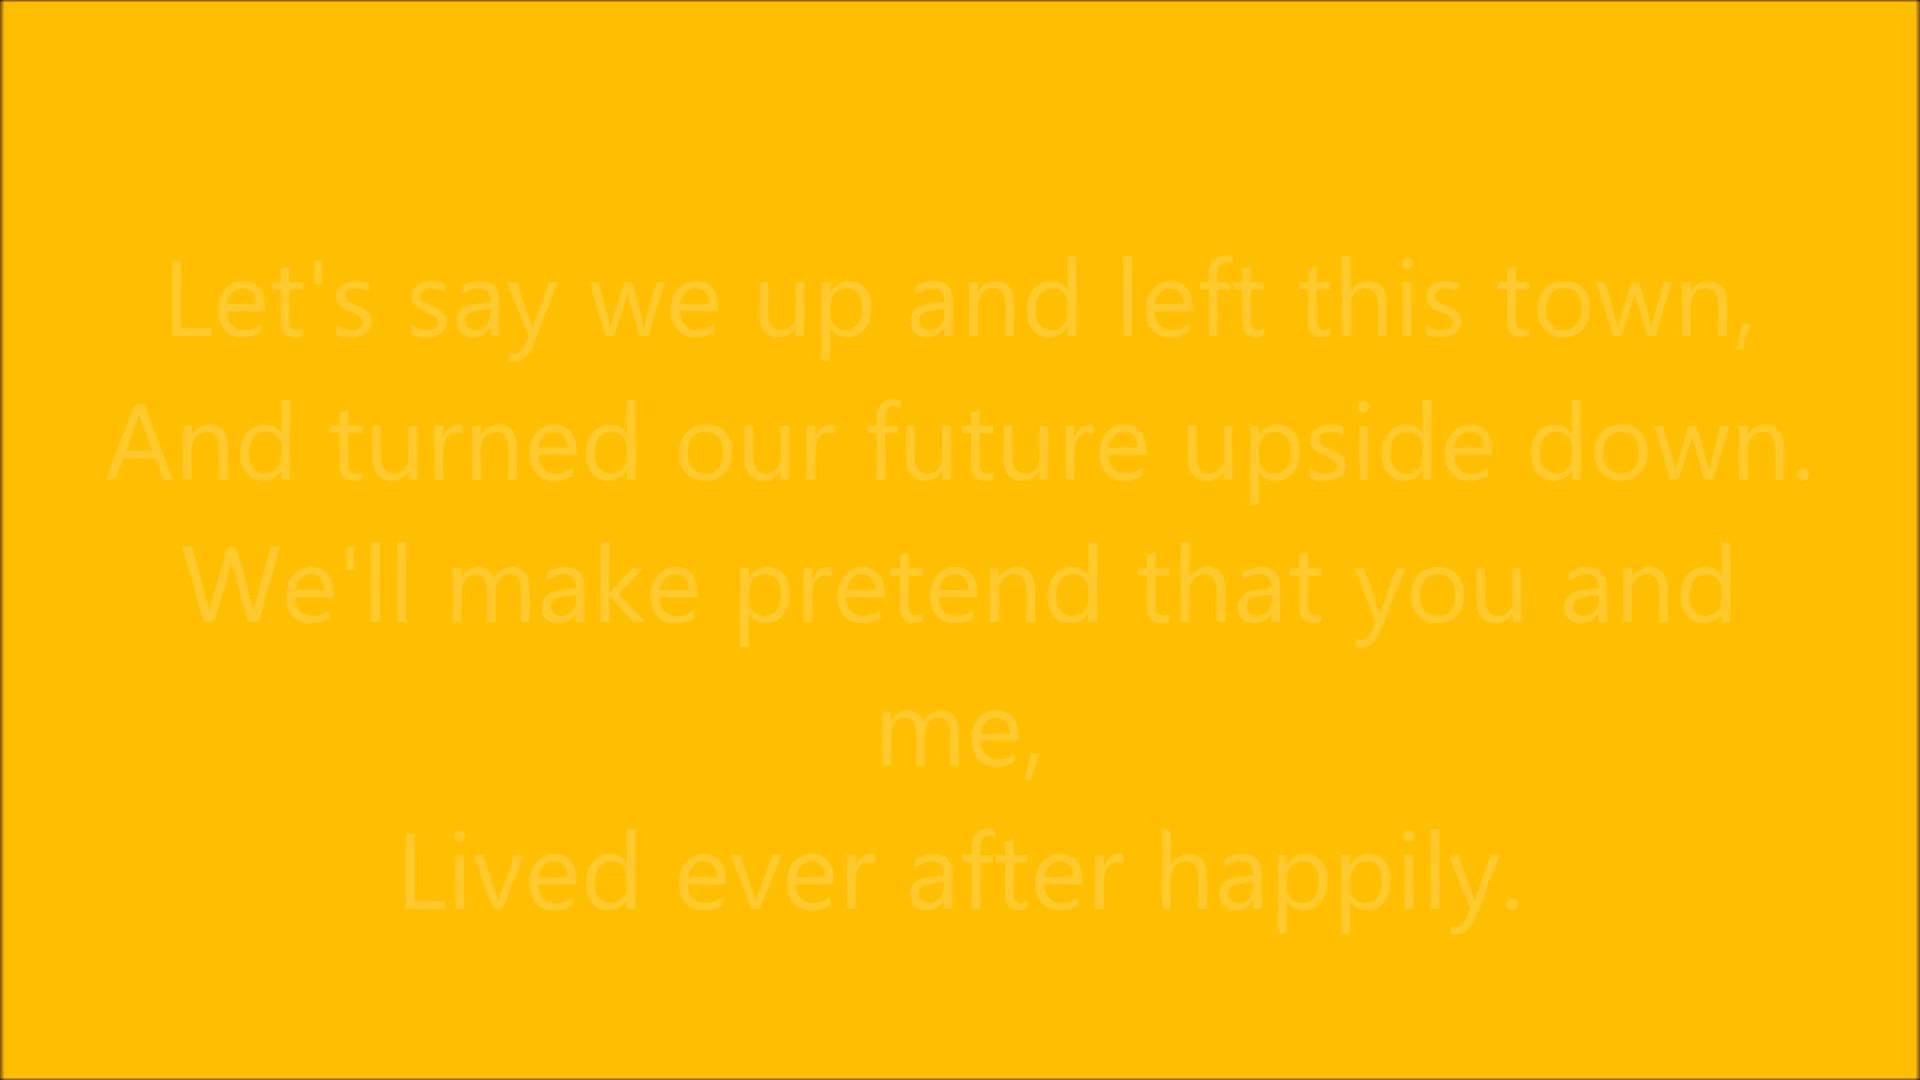 Twenty e Pilots Lyrics Wallpaper images